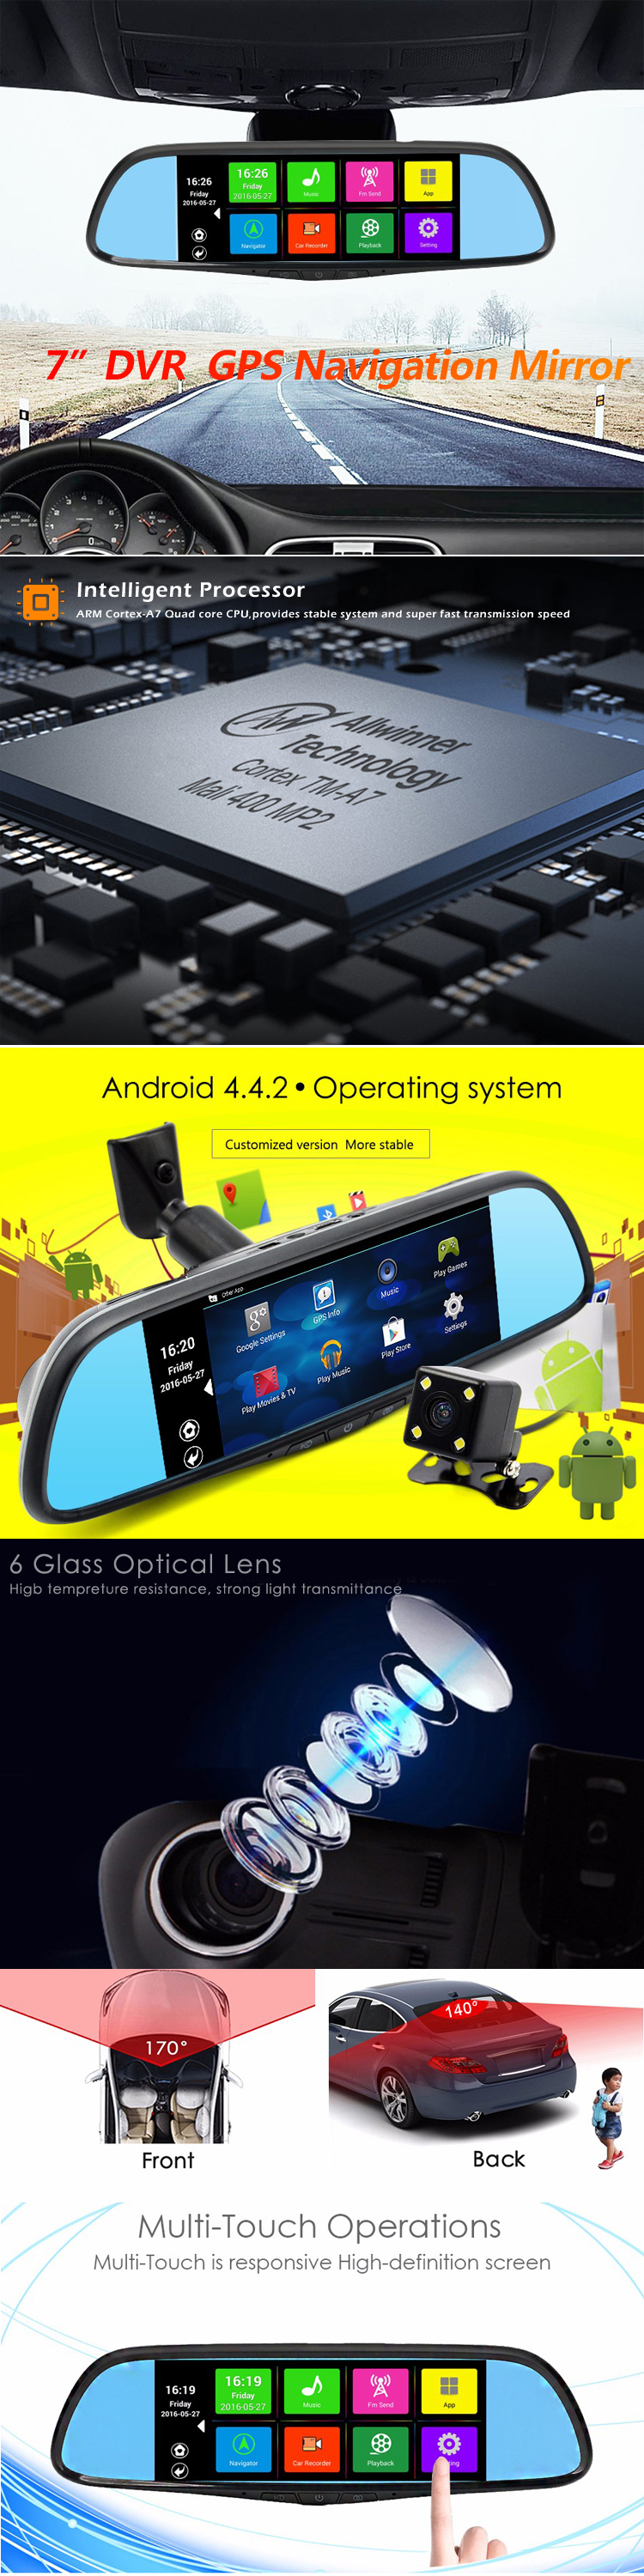 7.0 inch Android 4.4 system rearview mirror Bluetooth gps navigation dual camera 1080p car dvr